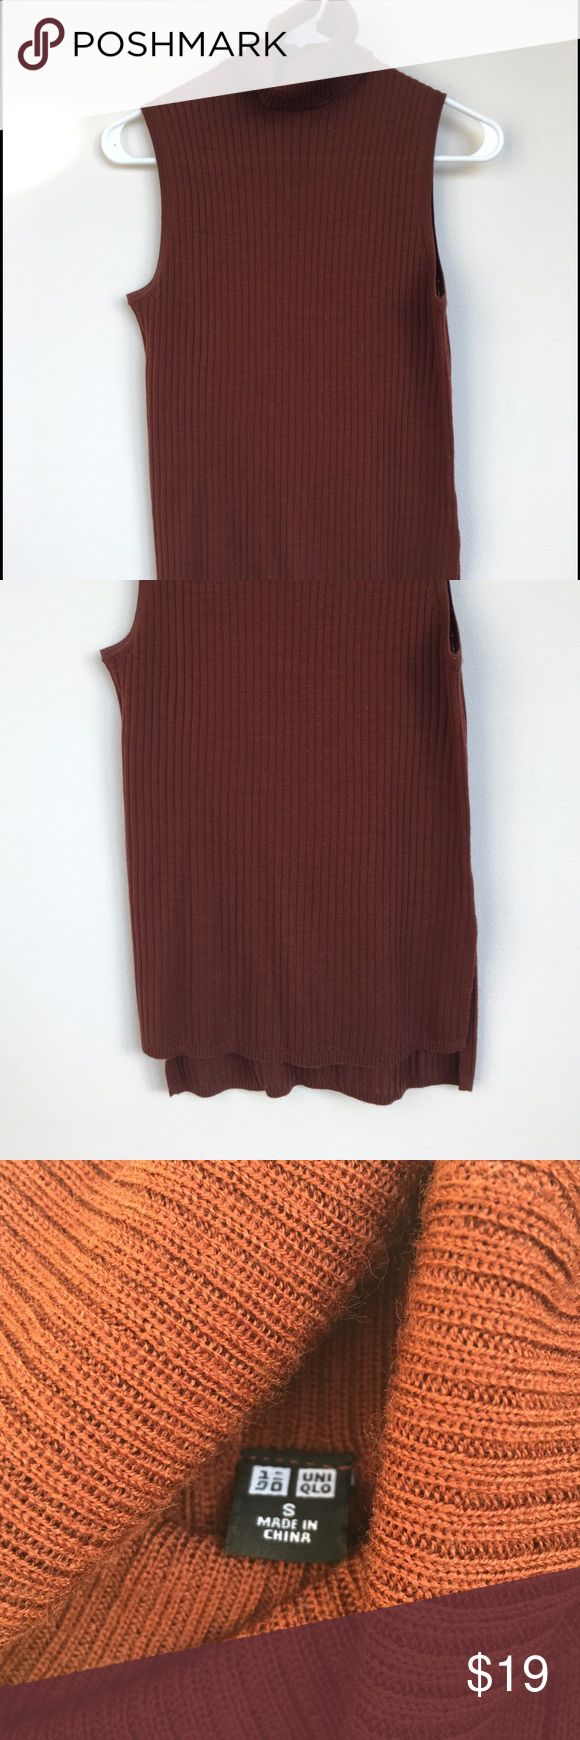 NWOT Turtleneck sweater tank Classy turtleneck sweater tank from Uniqlo. It is a rich copper brown and pairs well most anything. Small slits on both sides provide for a flattering look. Uniqlo Tops Tank Tops